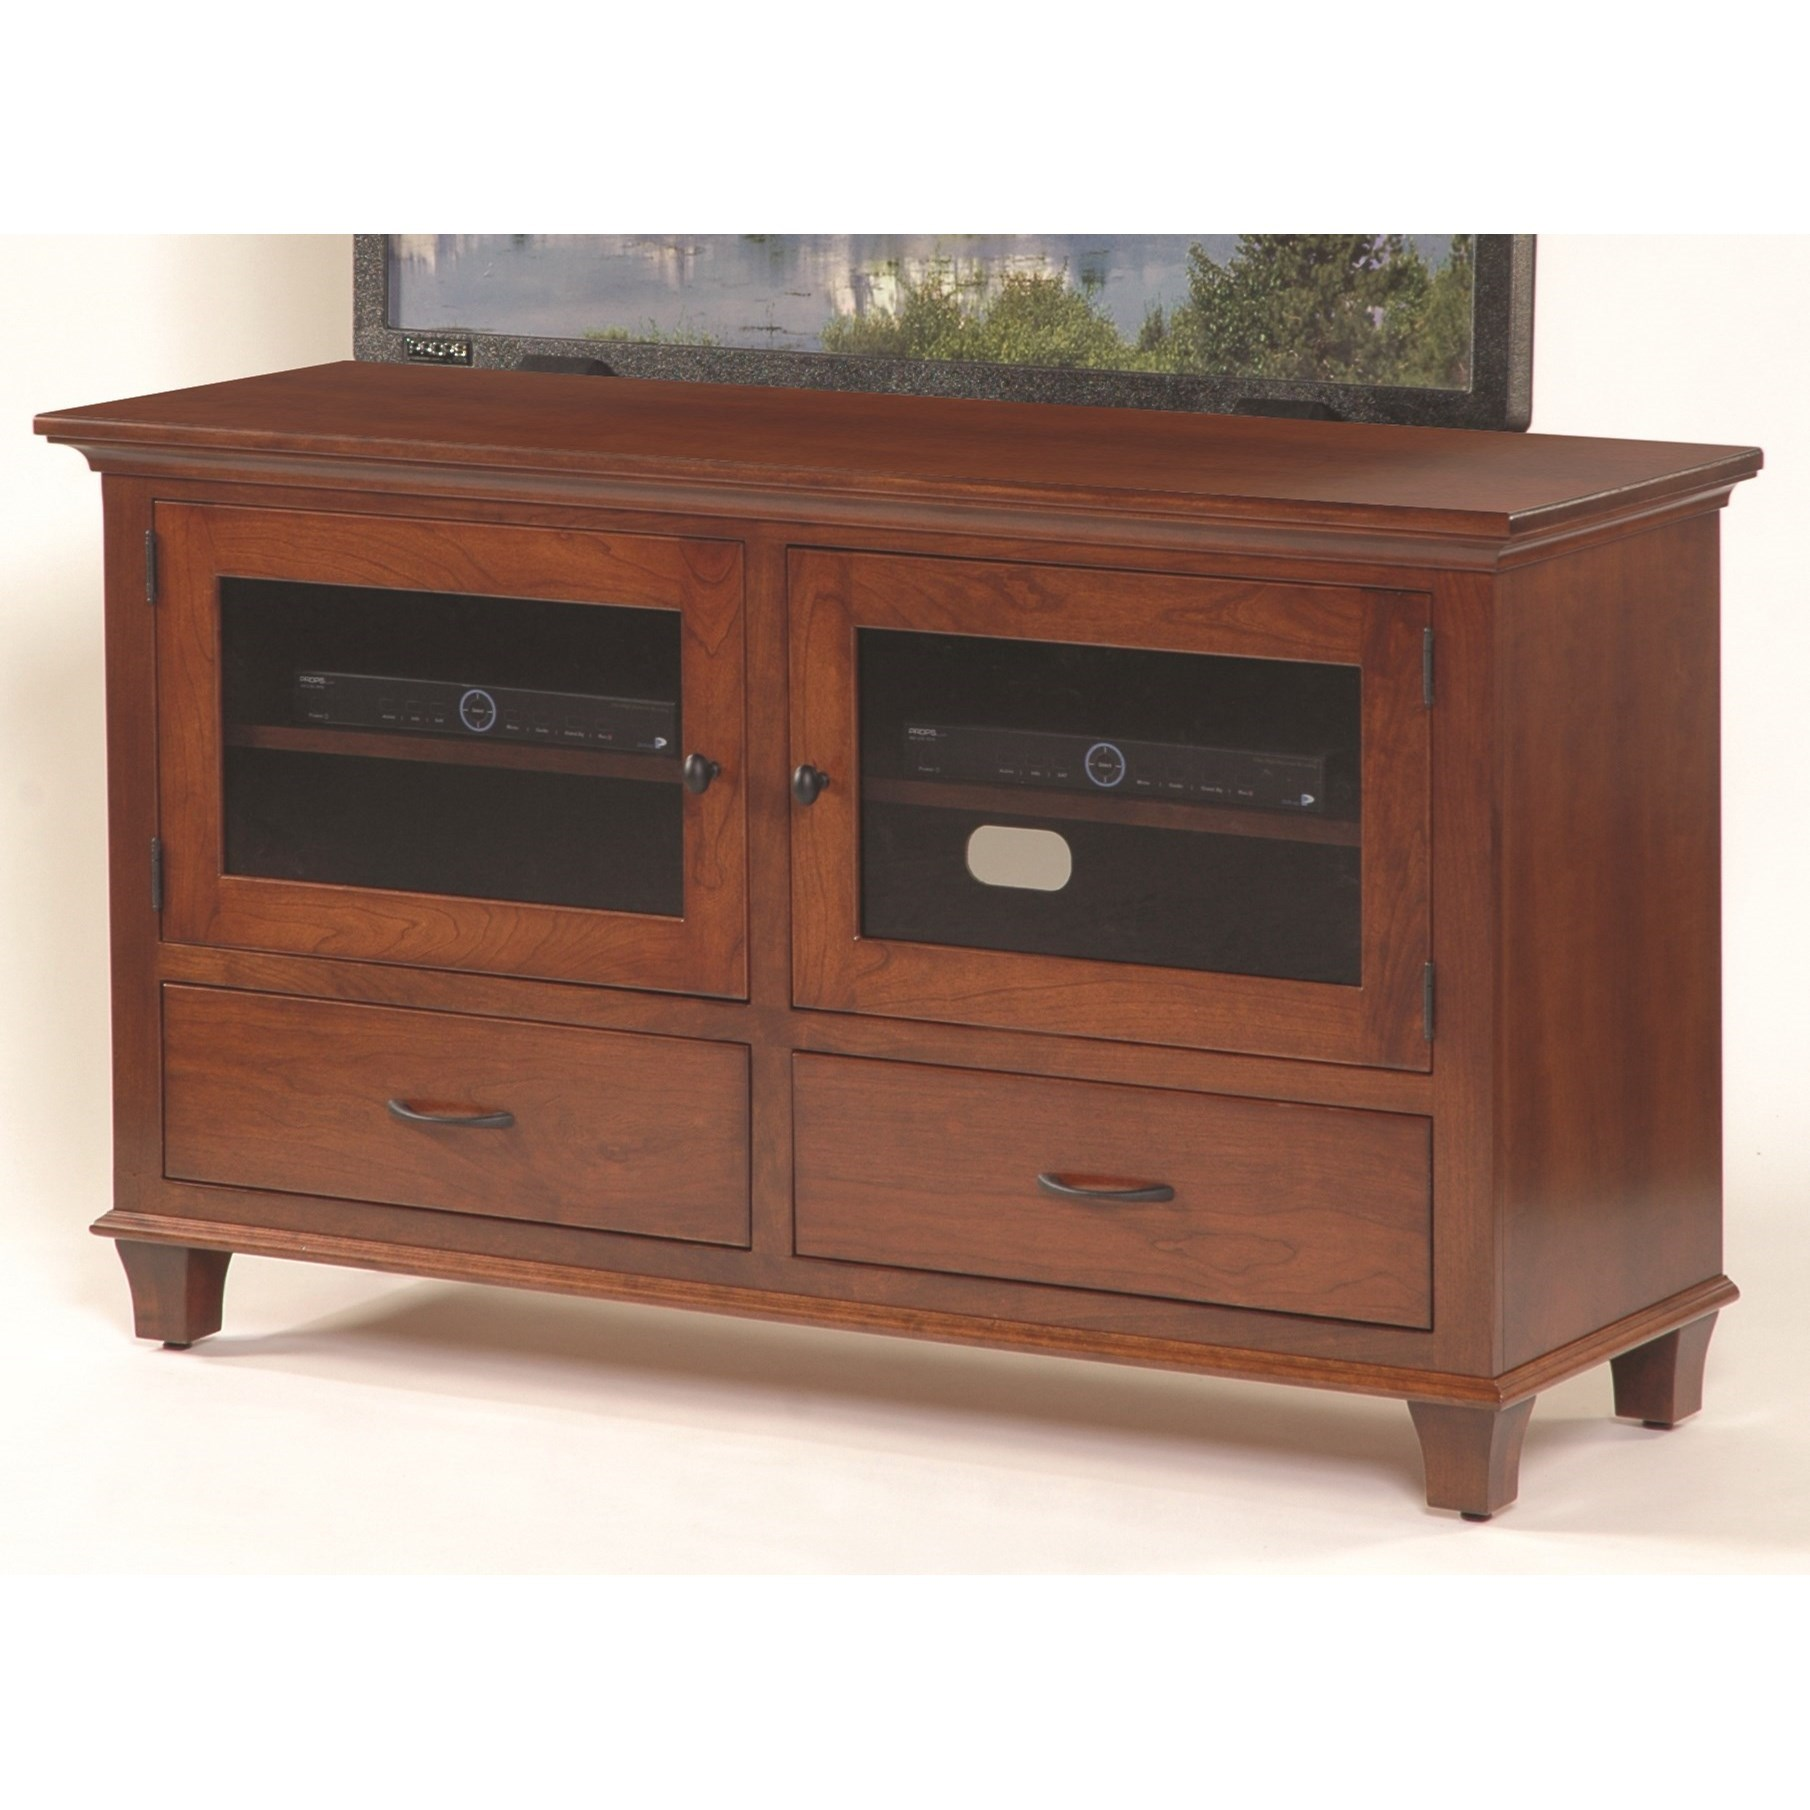 """Entertainment Bourten 54"""" TV Stand by INTEG Wood Products at Saugerties Furniture Mart"""